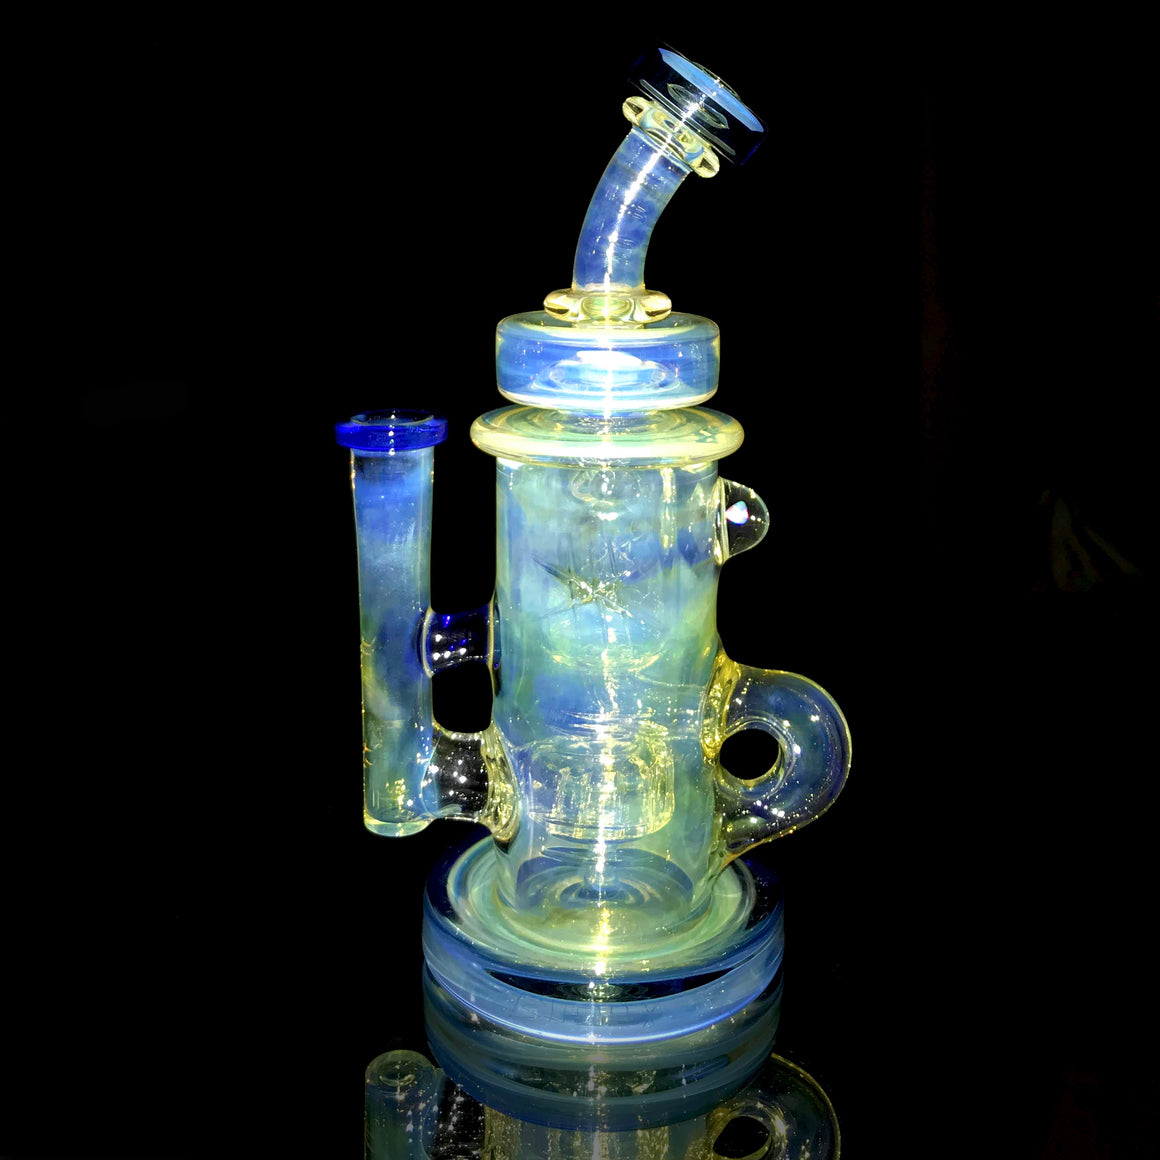 Fumed & Carved Klein Recycler - Heavy Blue Dream - 14mm Female